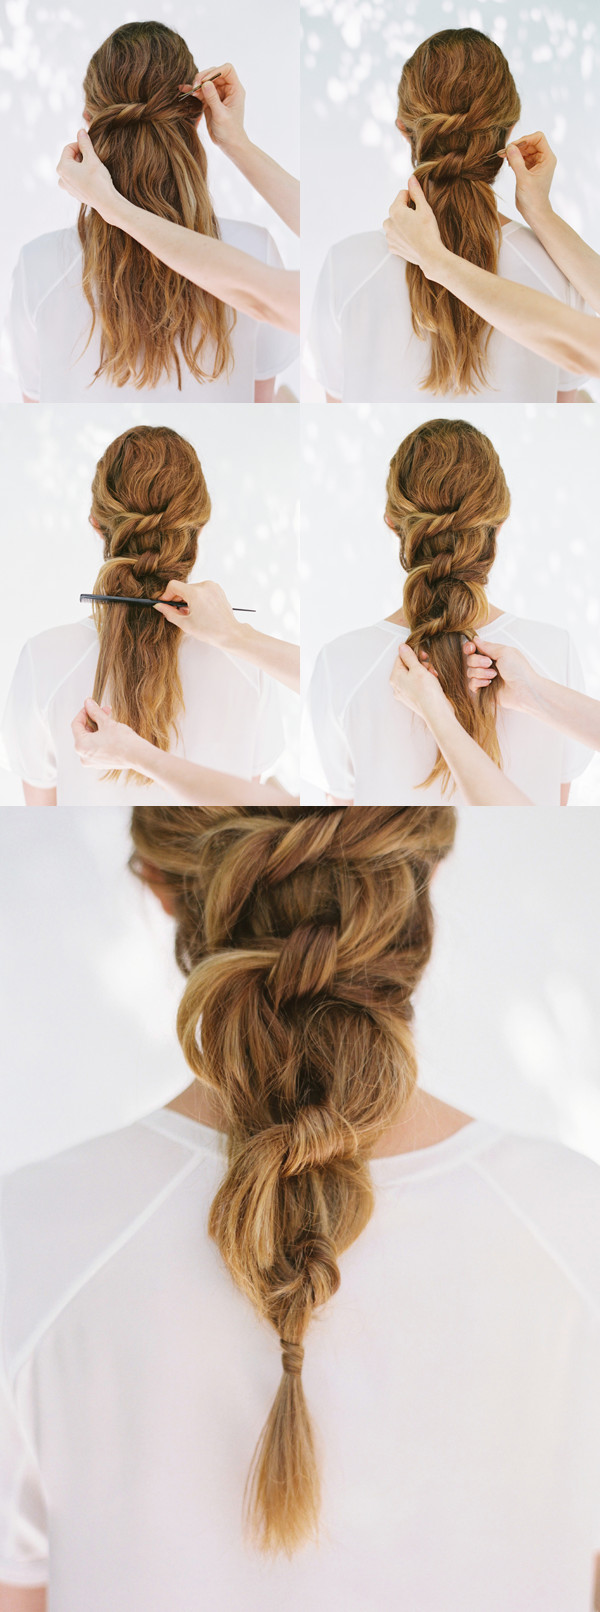 Best ideas about DIY Wedding Hairstyles For Long Hair . Save or Pin DIY Knot Ponytail DIY Weddings Now.